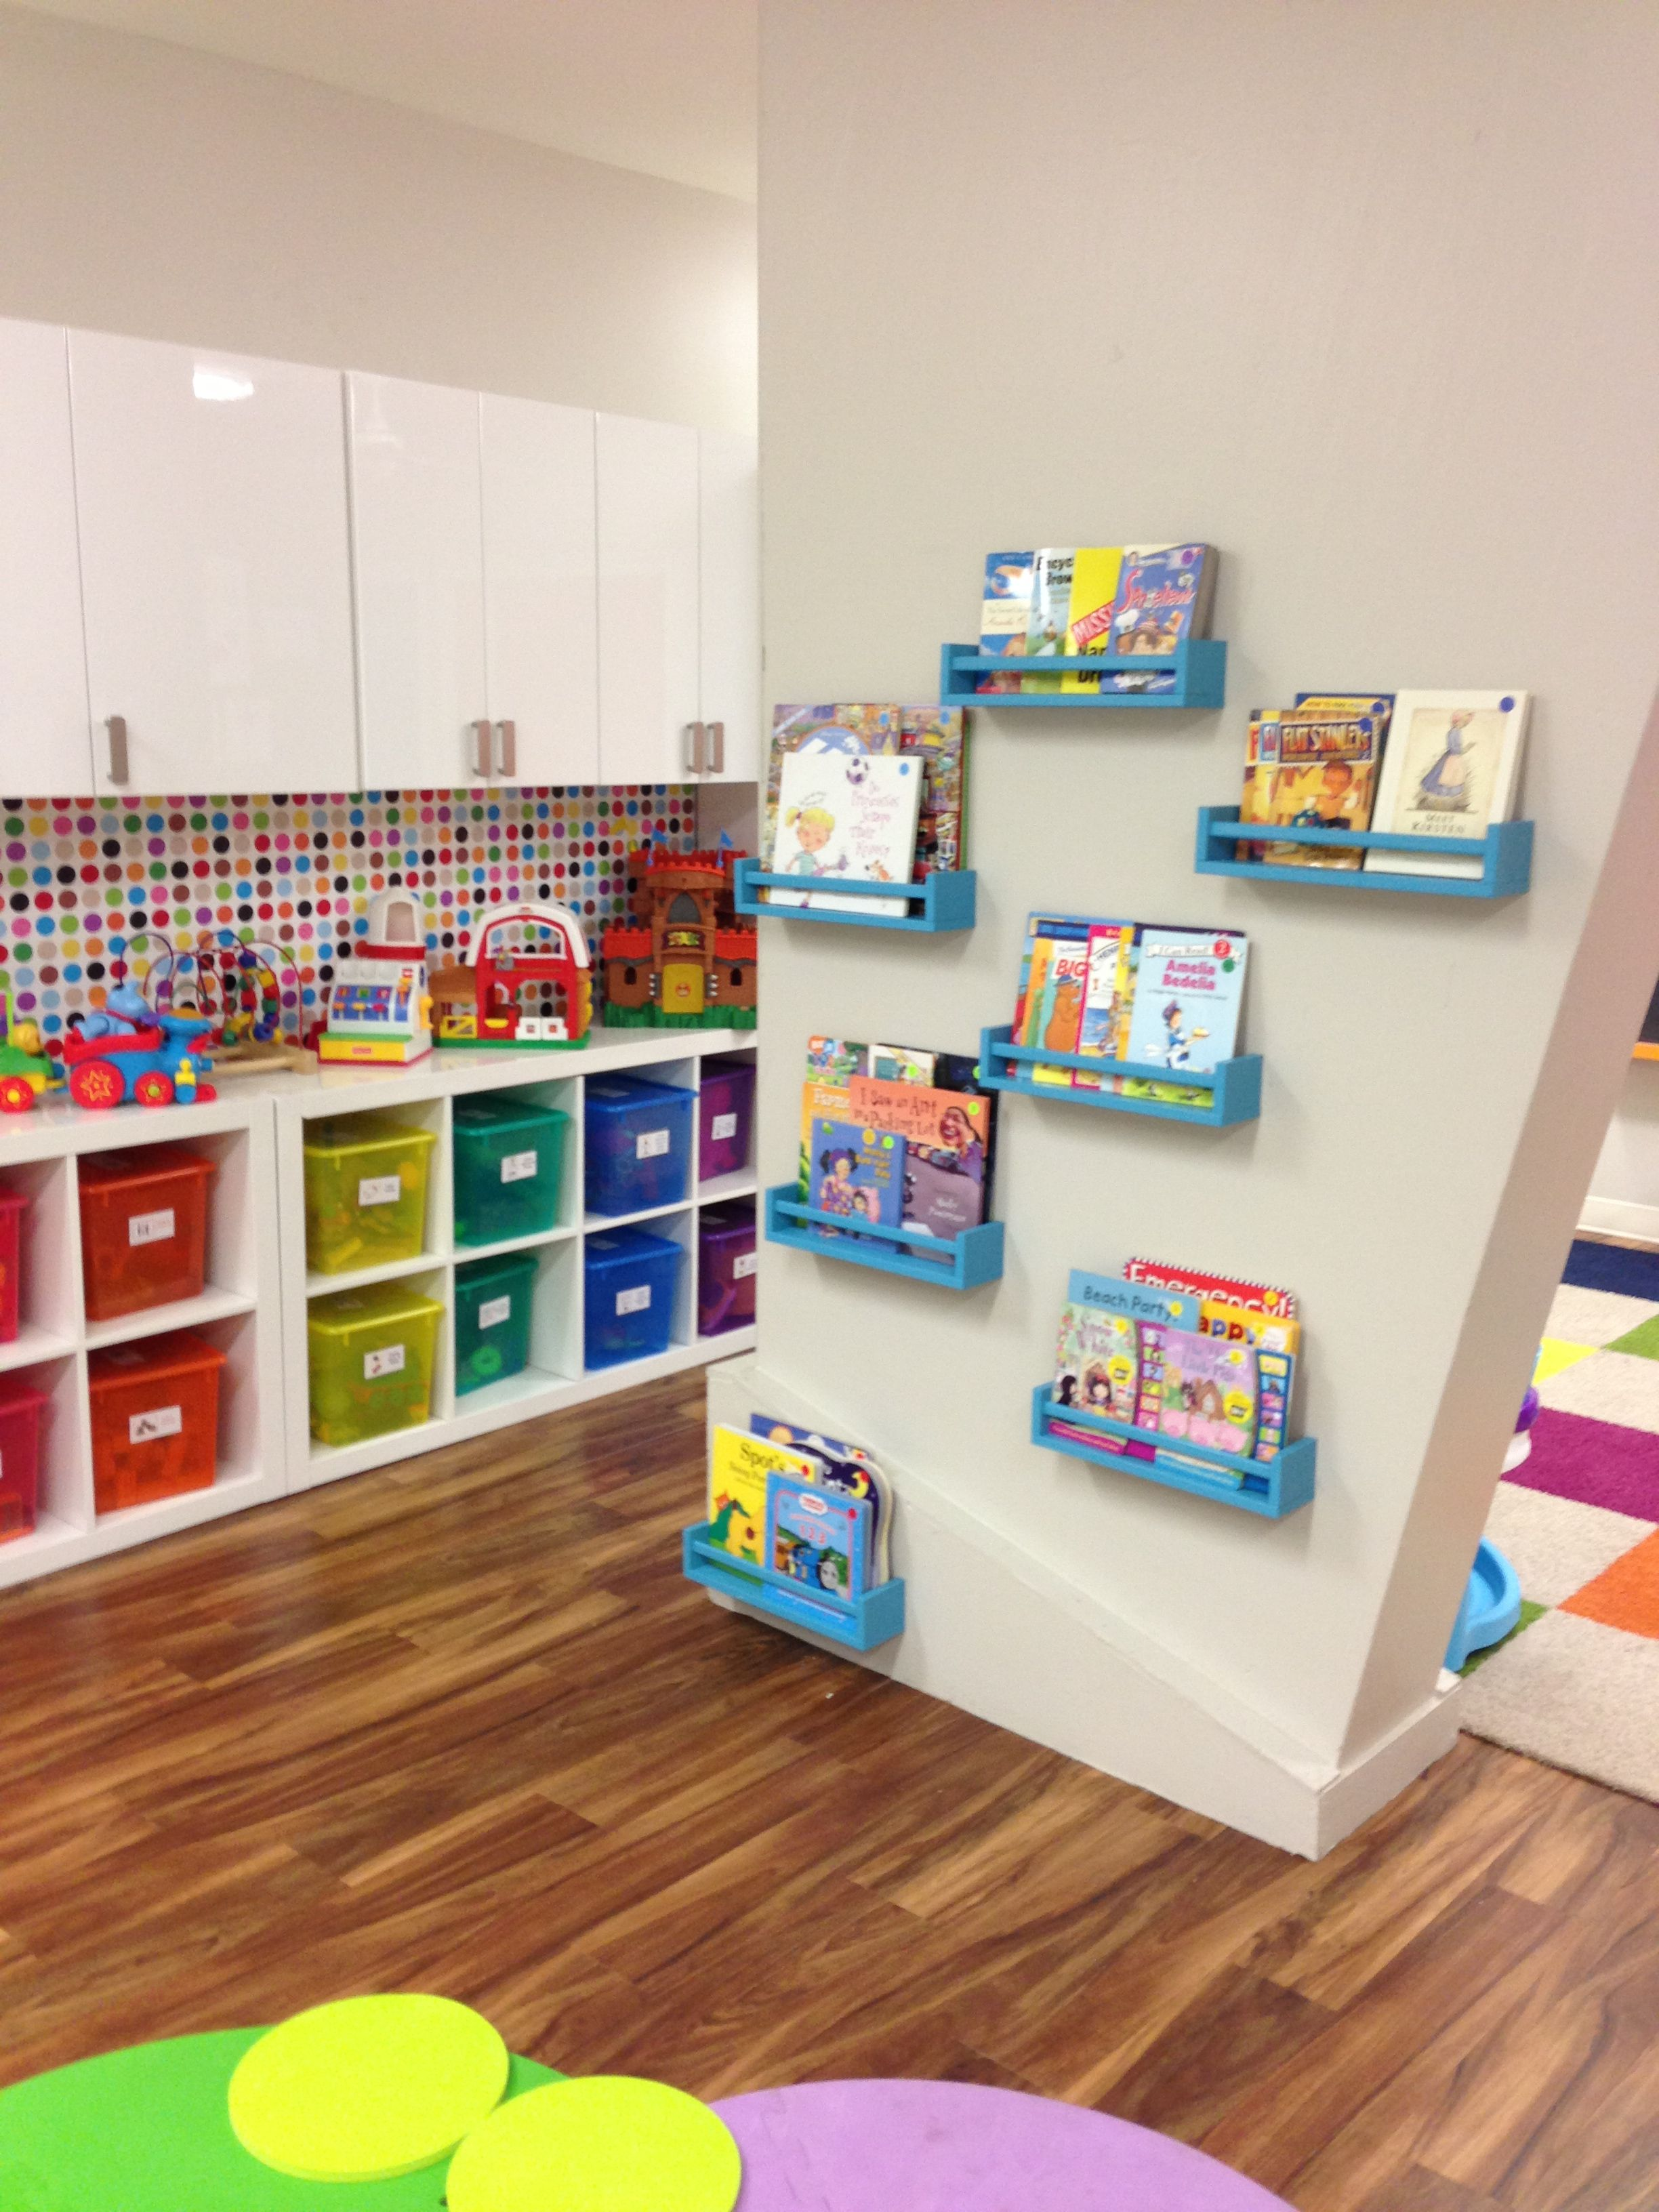 Cooperized Kidz Childcare Playroom Decor Meredith Rosson